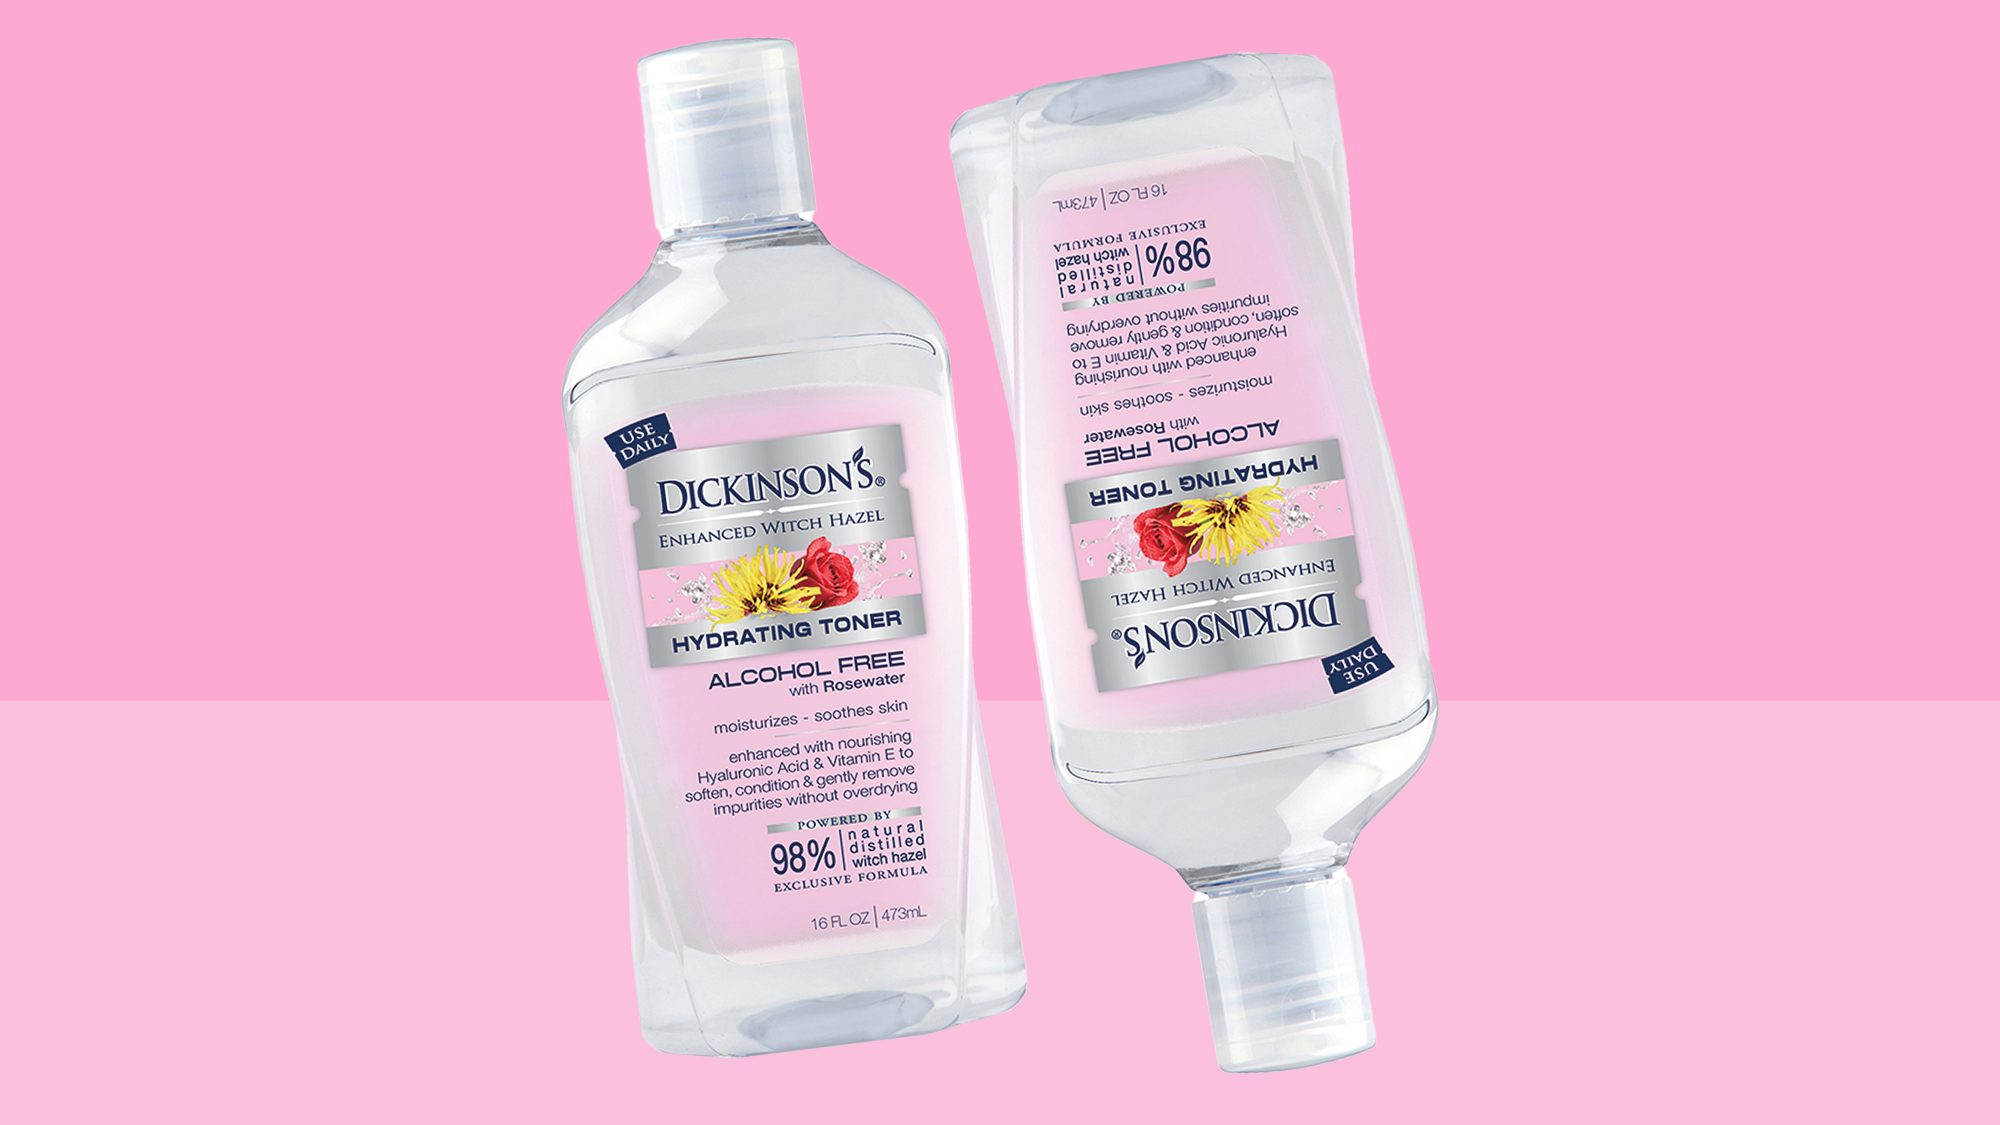 Dickinson's Enhanced Witch Hazel Hydrating Toner with Rosewater